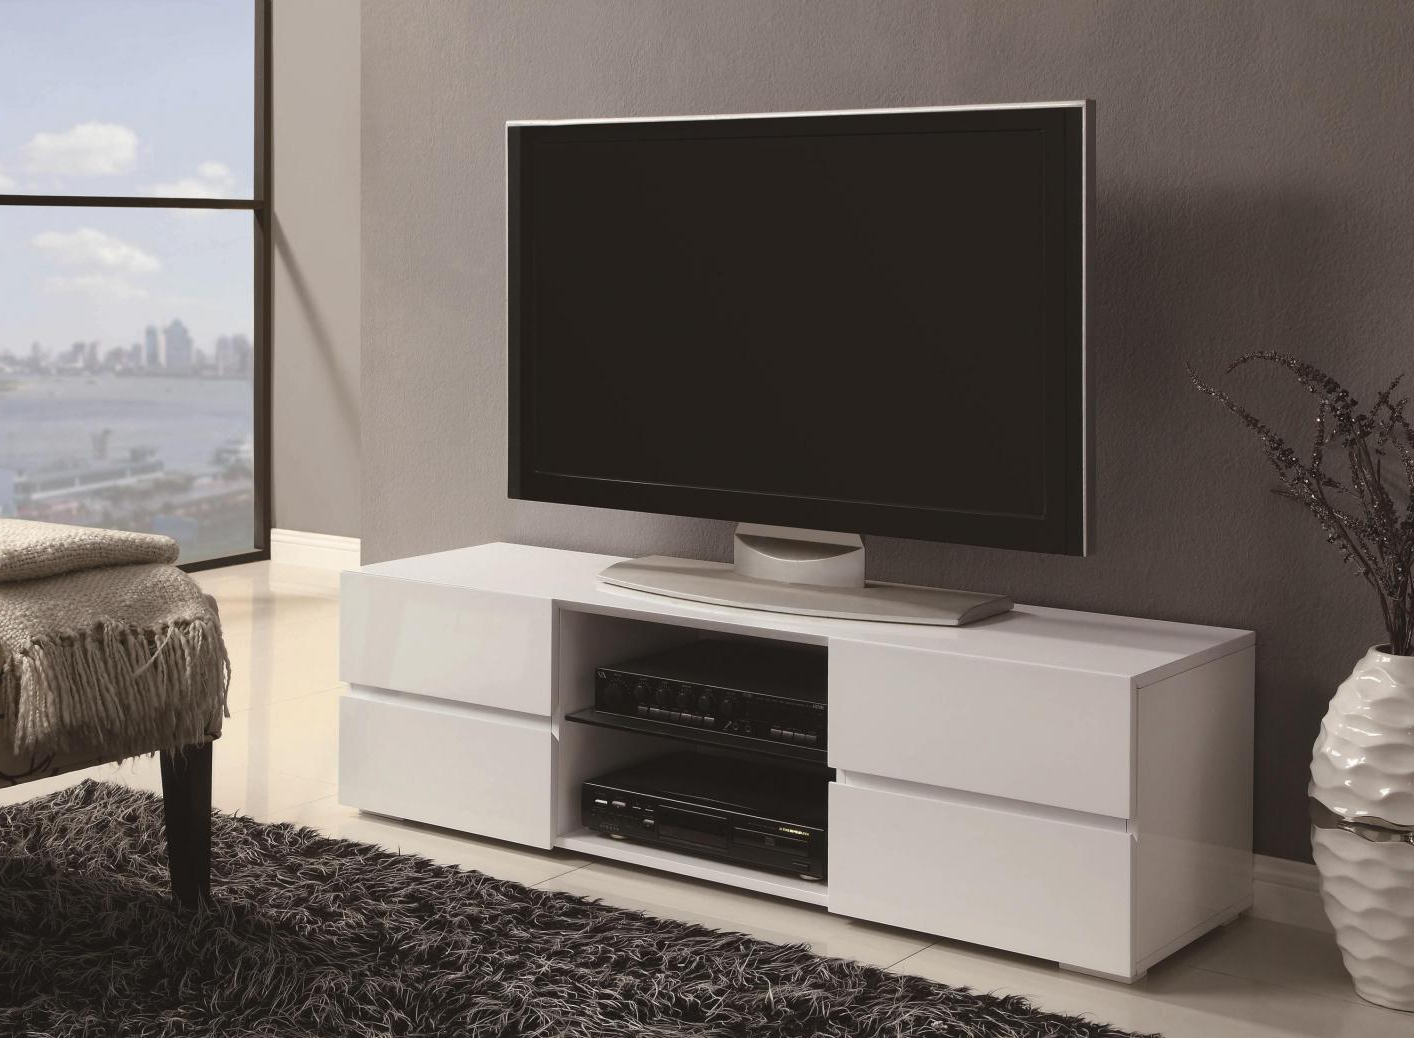 Preferred White And Wood Tv Stands Inside White Wood Tv Stand – Steal A Sofa Furniture Outlet Los Angeles Ca (View 19 of 20)